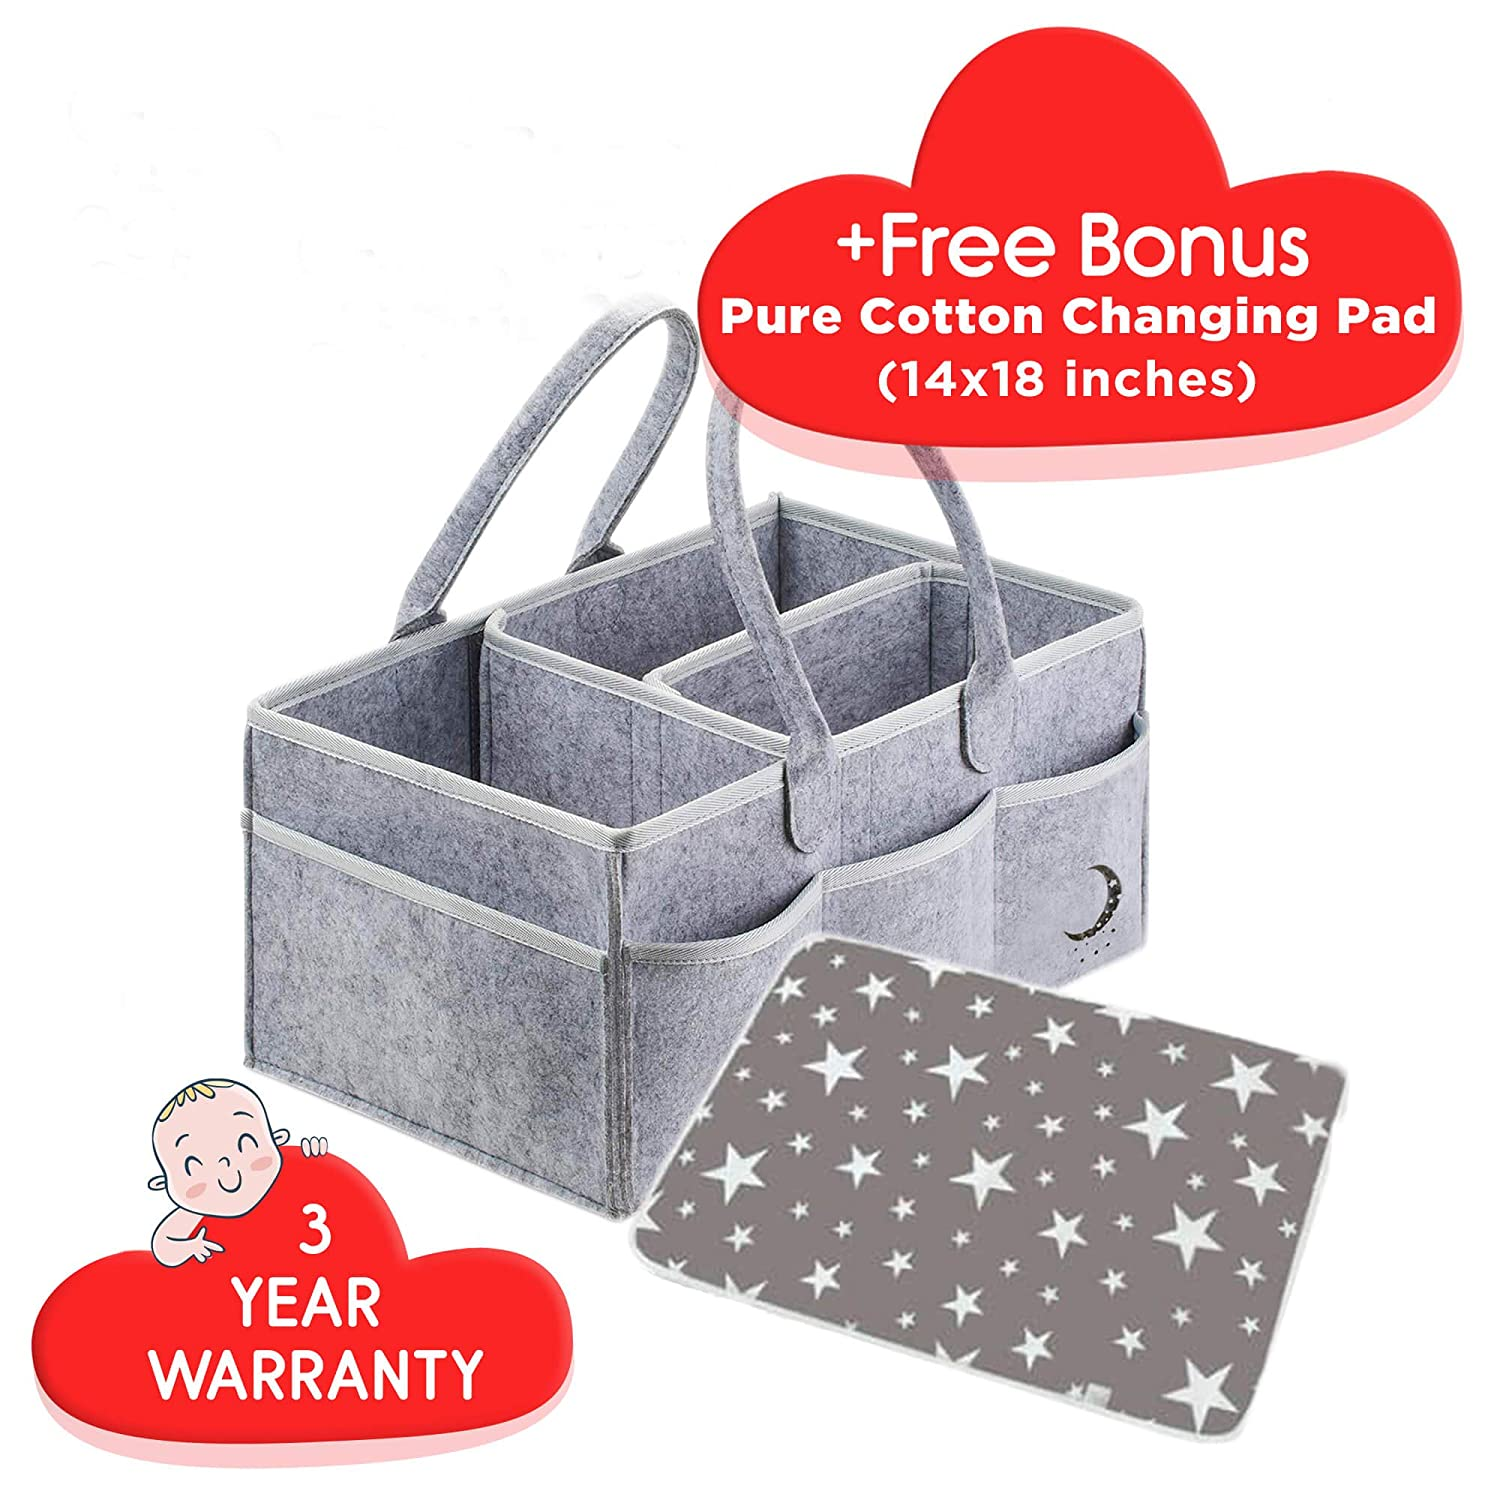 Nursery Essentials Storage Bins Gifts with Changing Pad,Newborn Registry for Baby Shower Portable Holder Bag for Changing Table and Car Barcan Baby Diaper Caddy Organizer